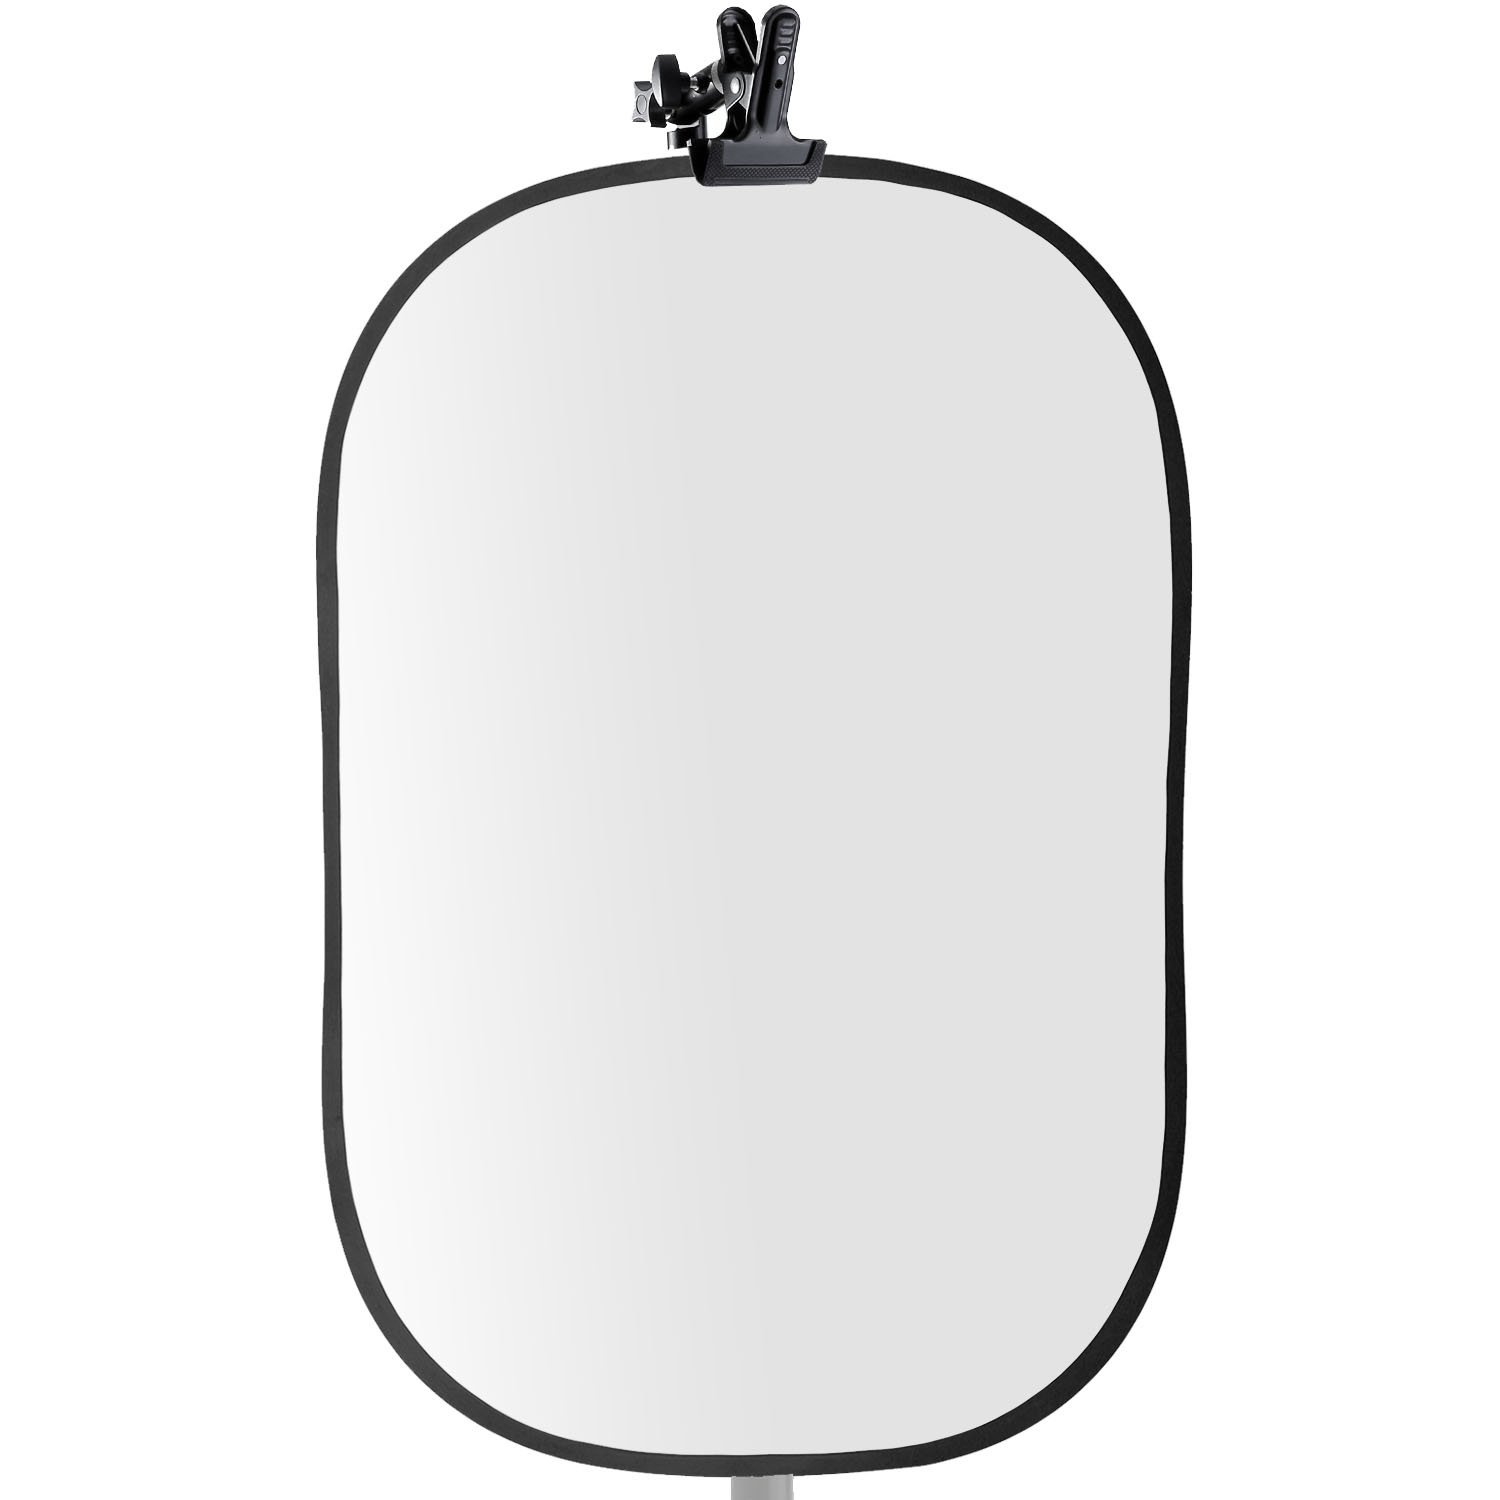 Neewer 5x7 feet/1.5x2.1 Meters Reflector Foldable Pop-Out Soft Diffuser Disc with Clamp Holder and Carrying Case for Studio and Outdoor Portrait, Product Photography, Video Shooting by Neewer